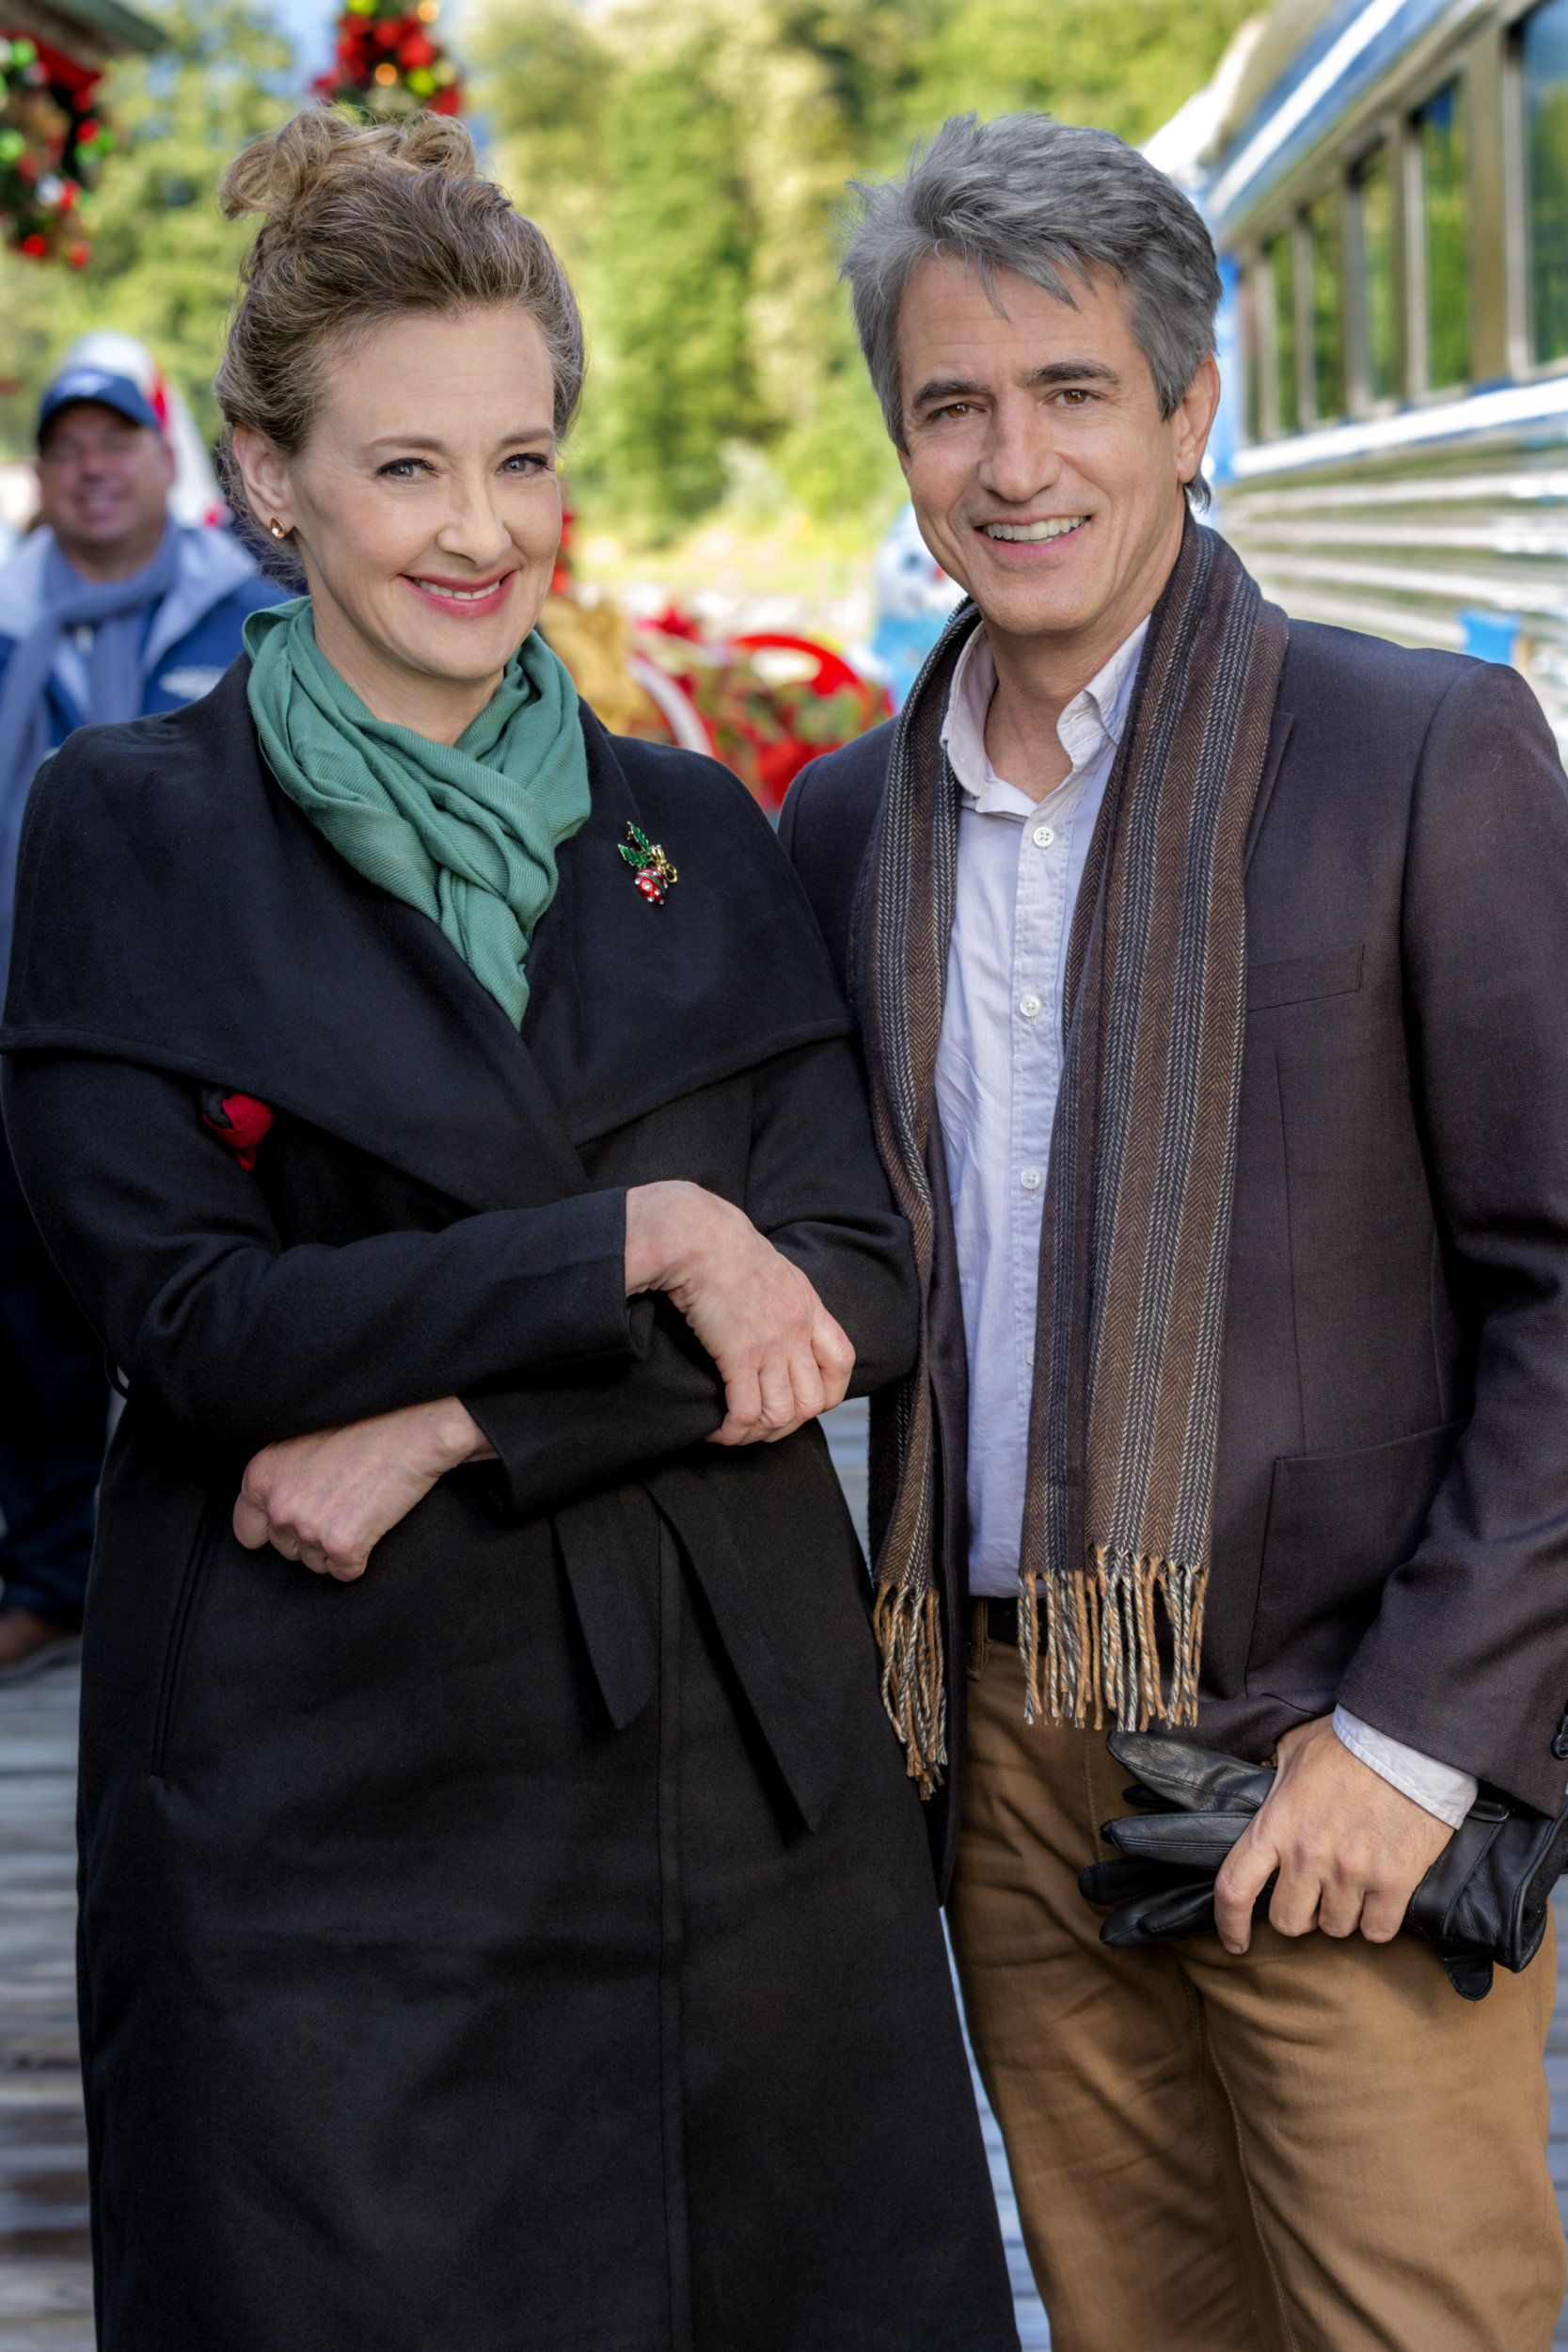 The Christmas Train.The Christmas Train Finds Dermot Mulroney And Joan Cusack On